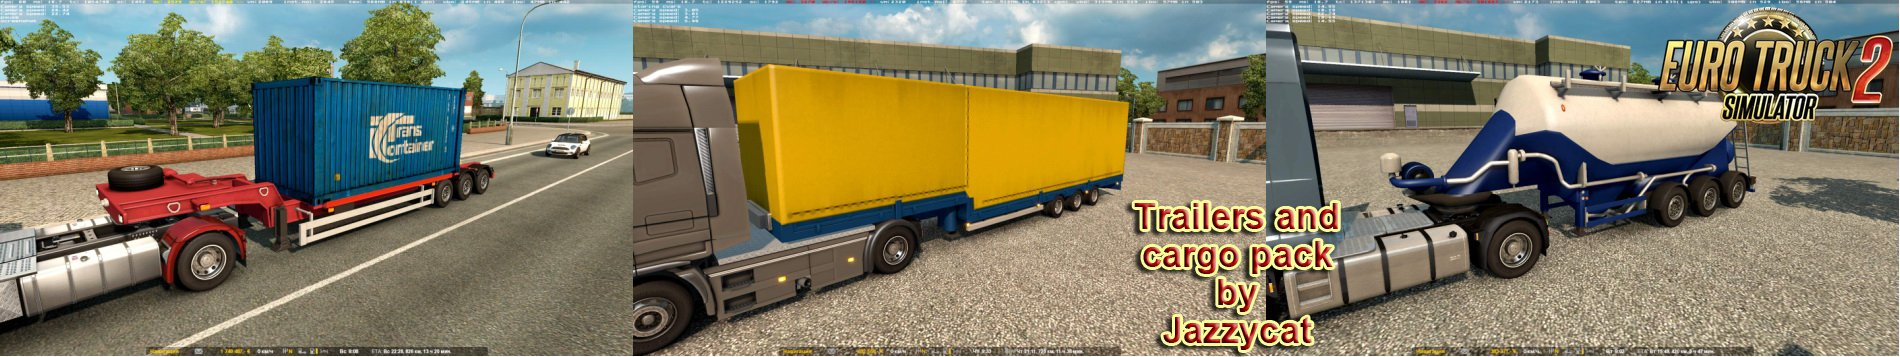 Trailers and Cargo Pack v5.2 by Jazzycat